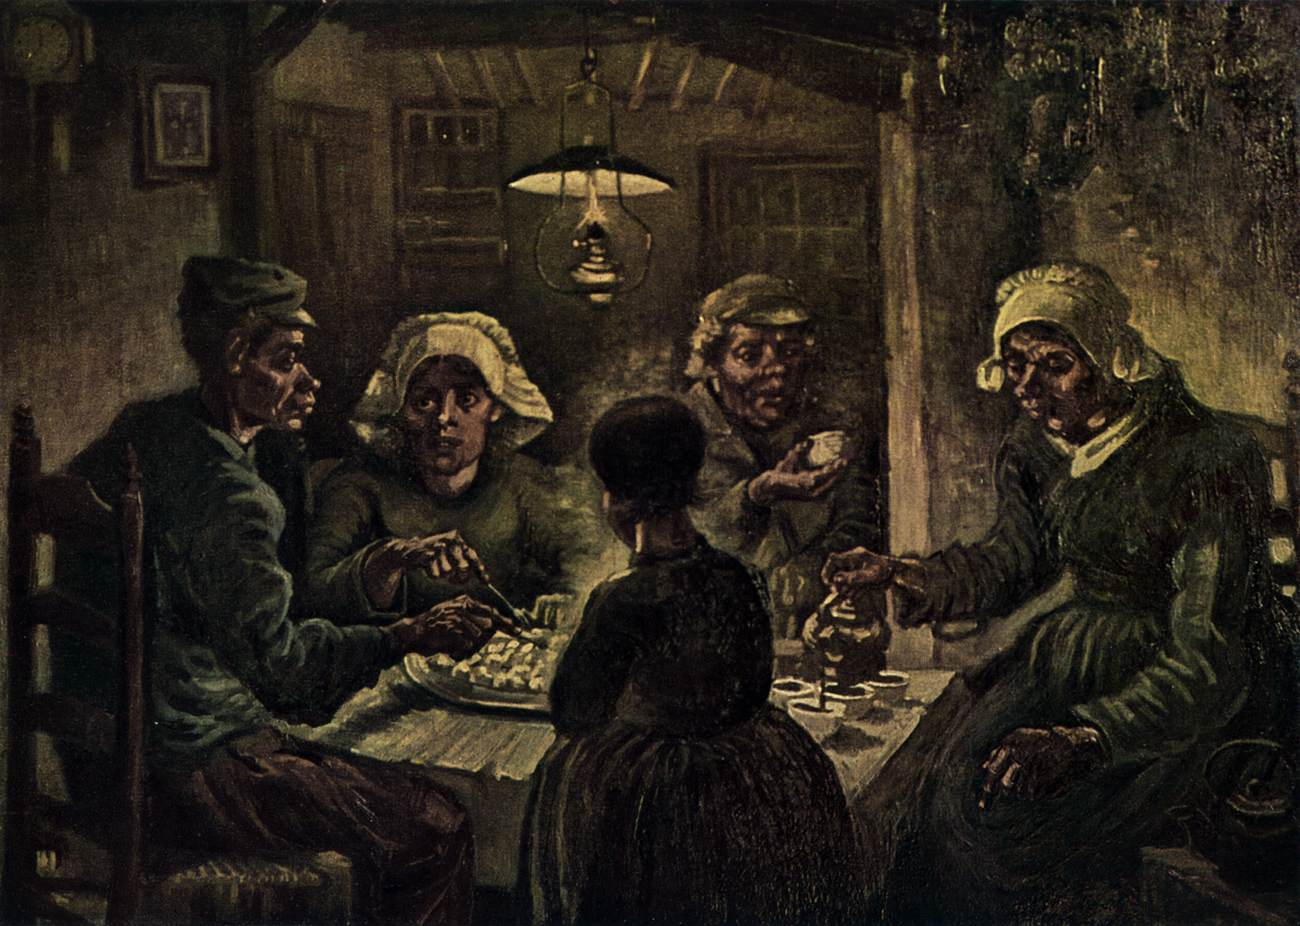 The Potato Eaters (Nuenen, 1885)